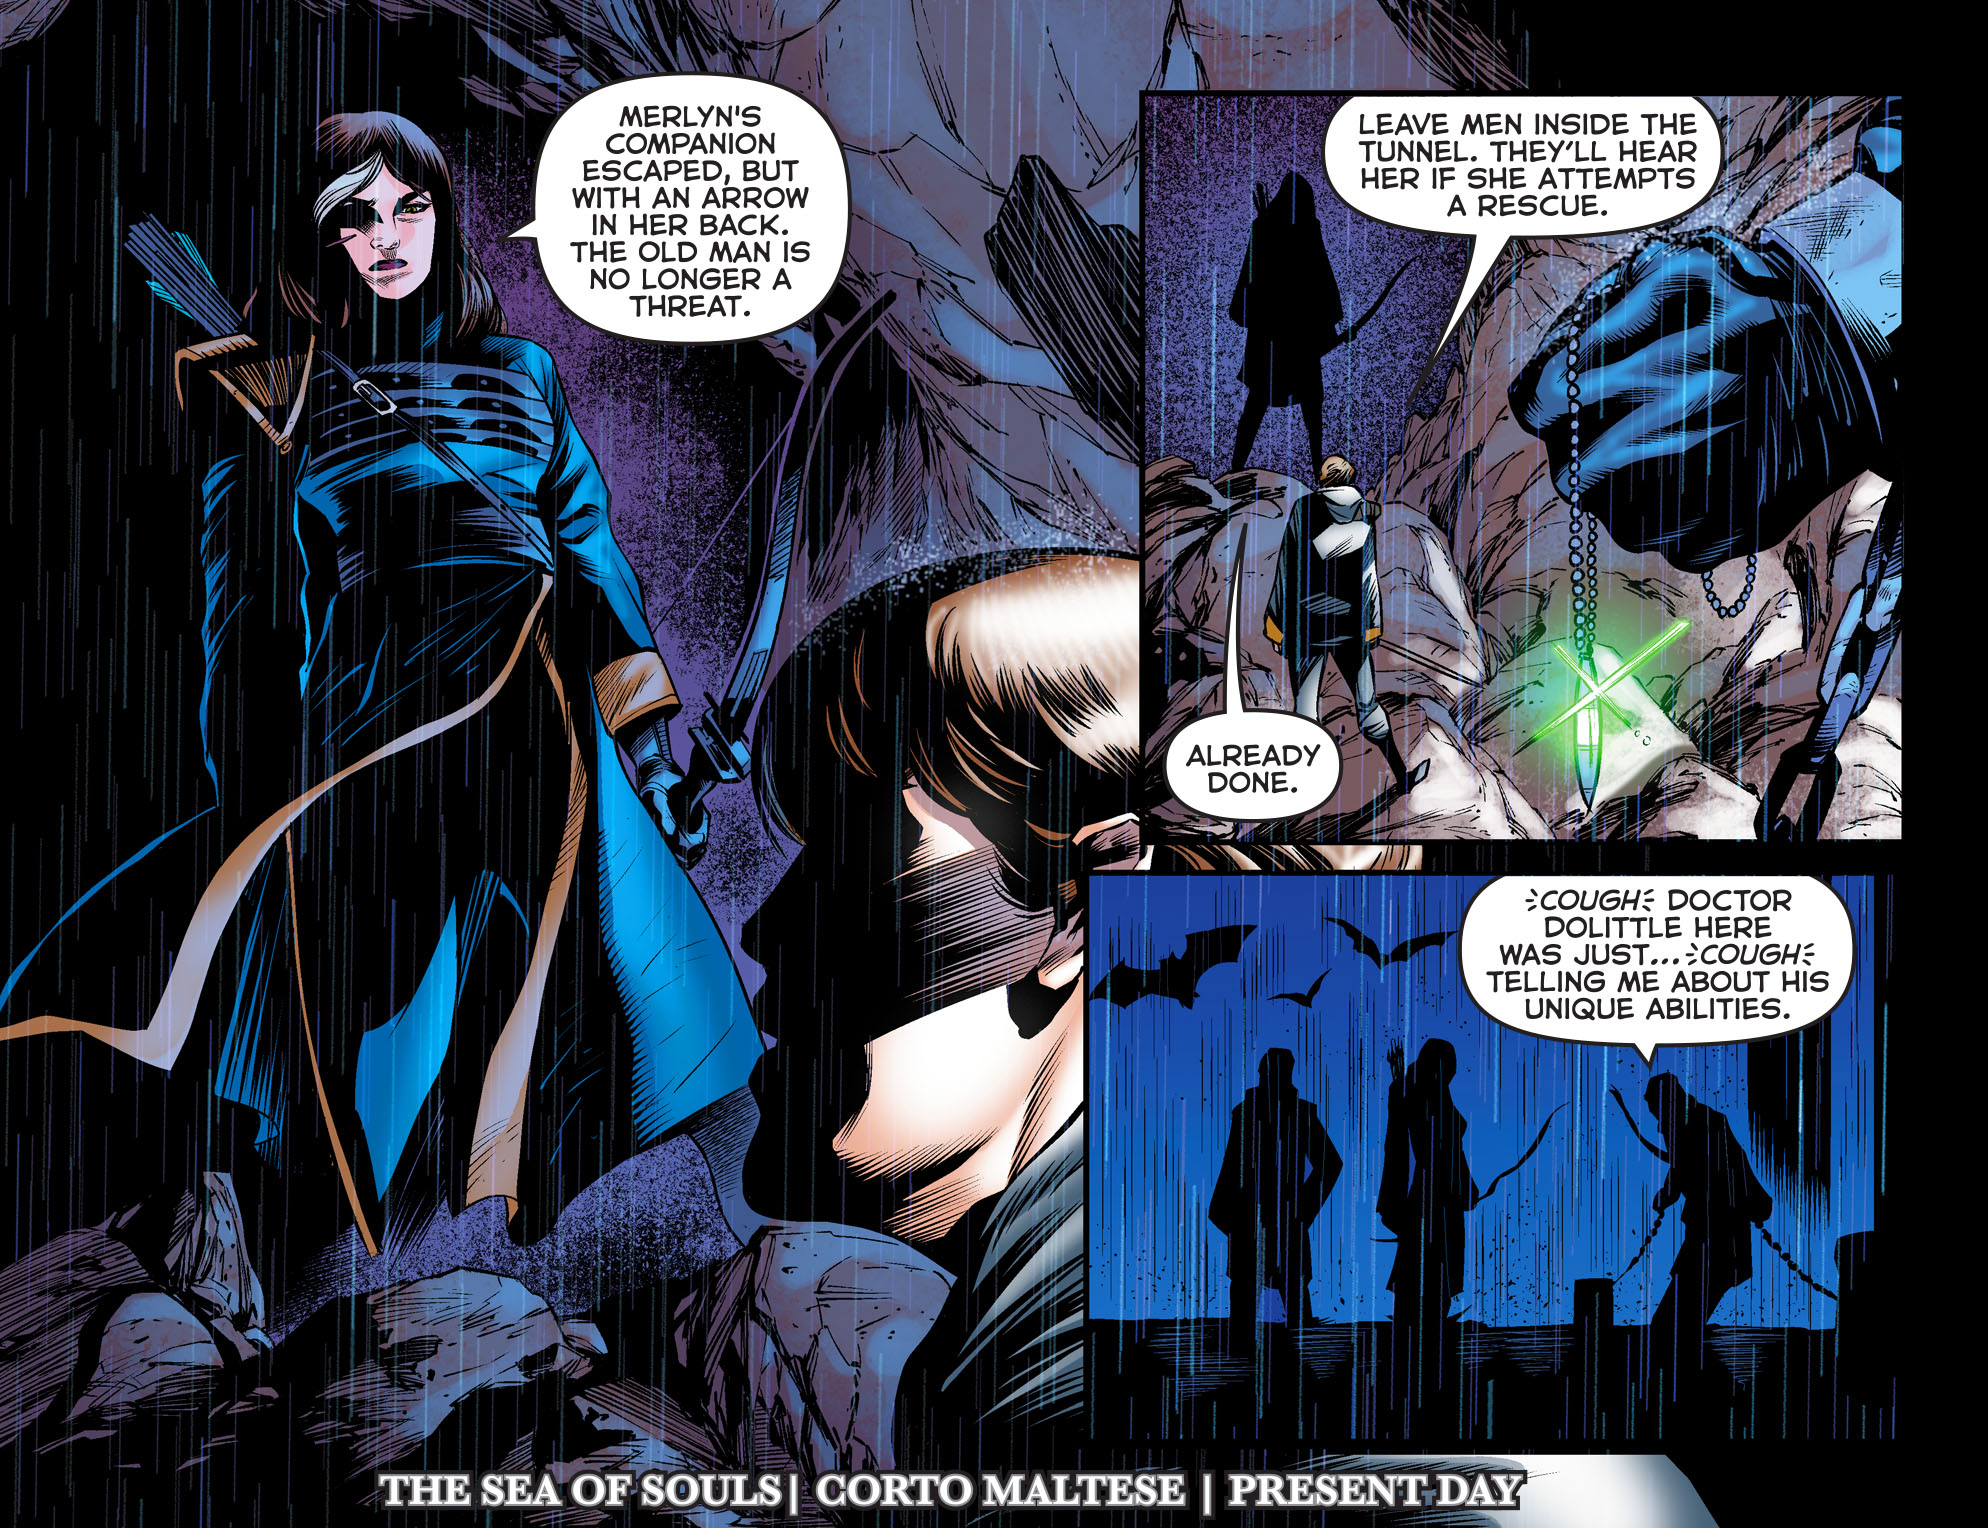 ARROW: DARK ARCHER Chapter 6 panel 3